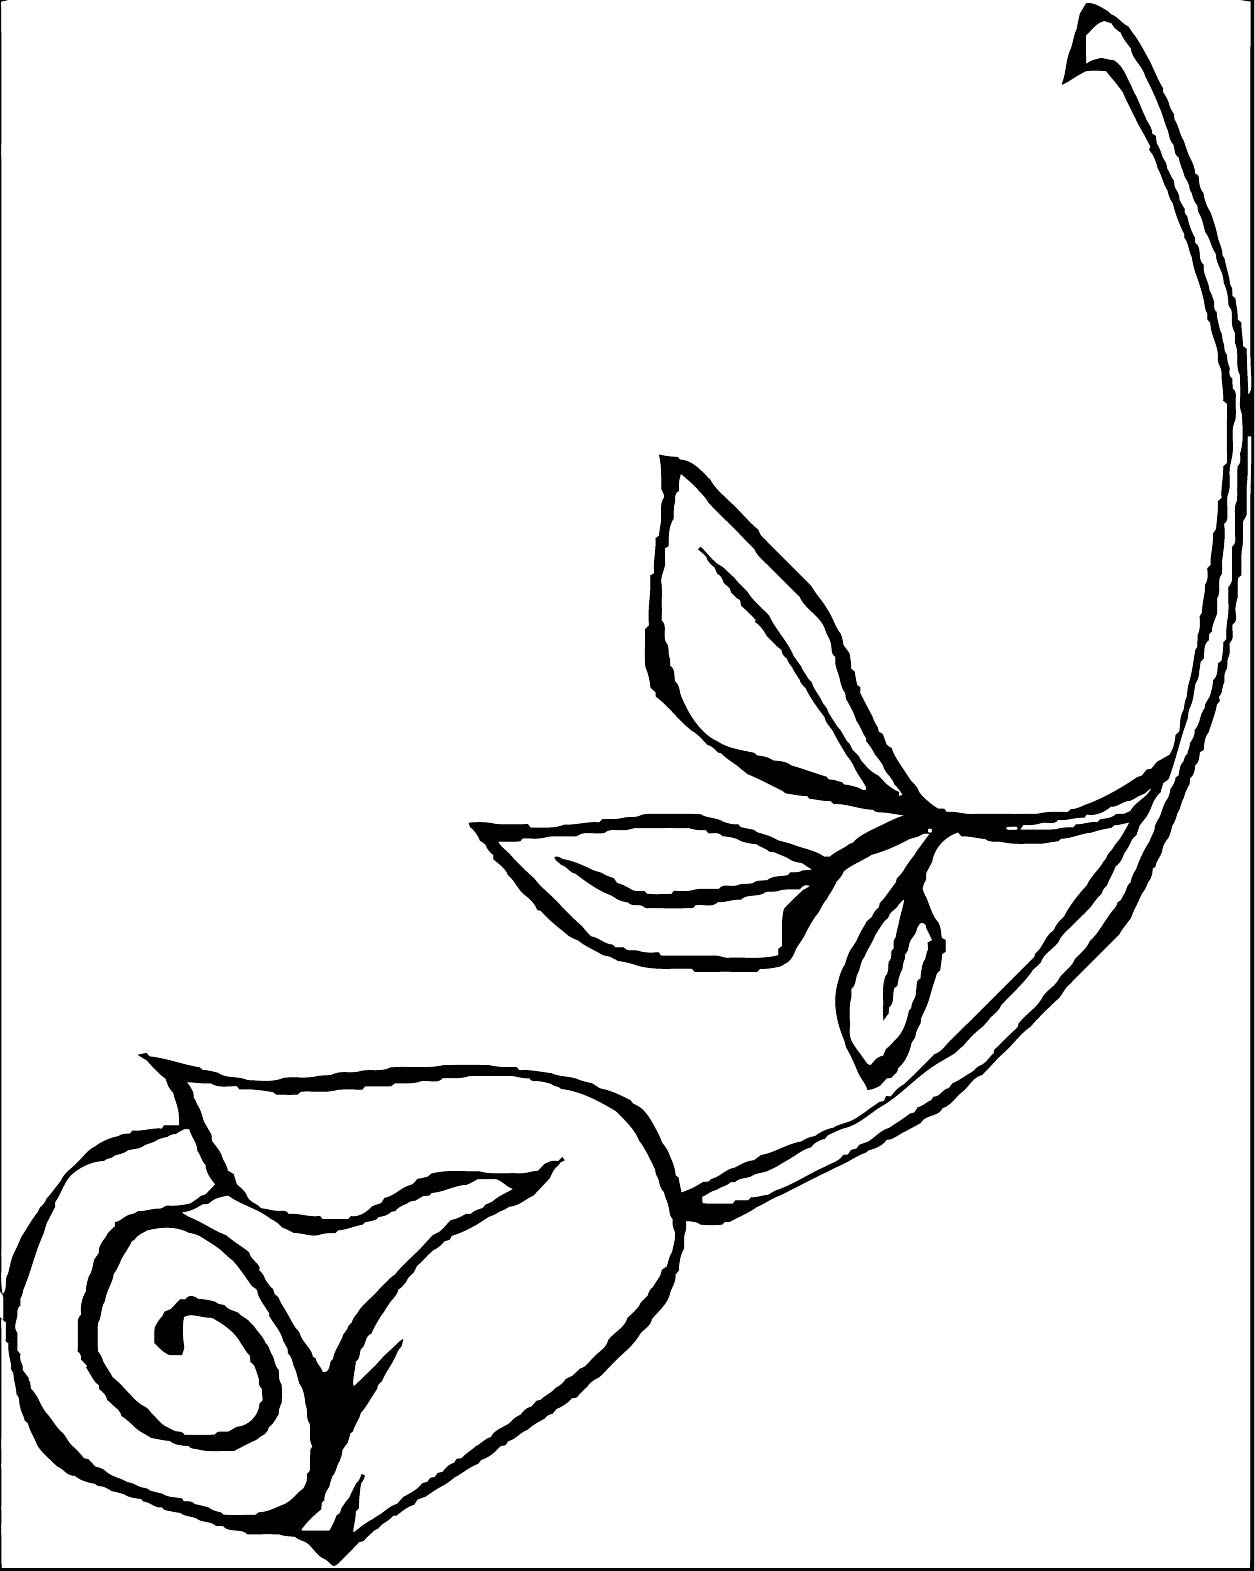 Wecoloringpage Com Free And Printable Coloring Page